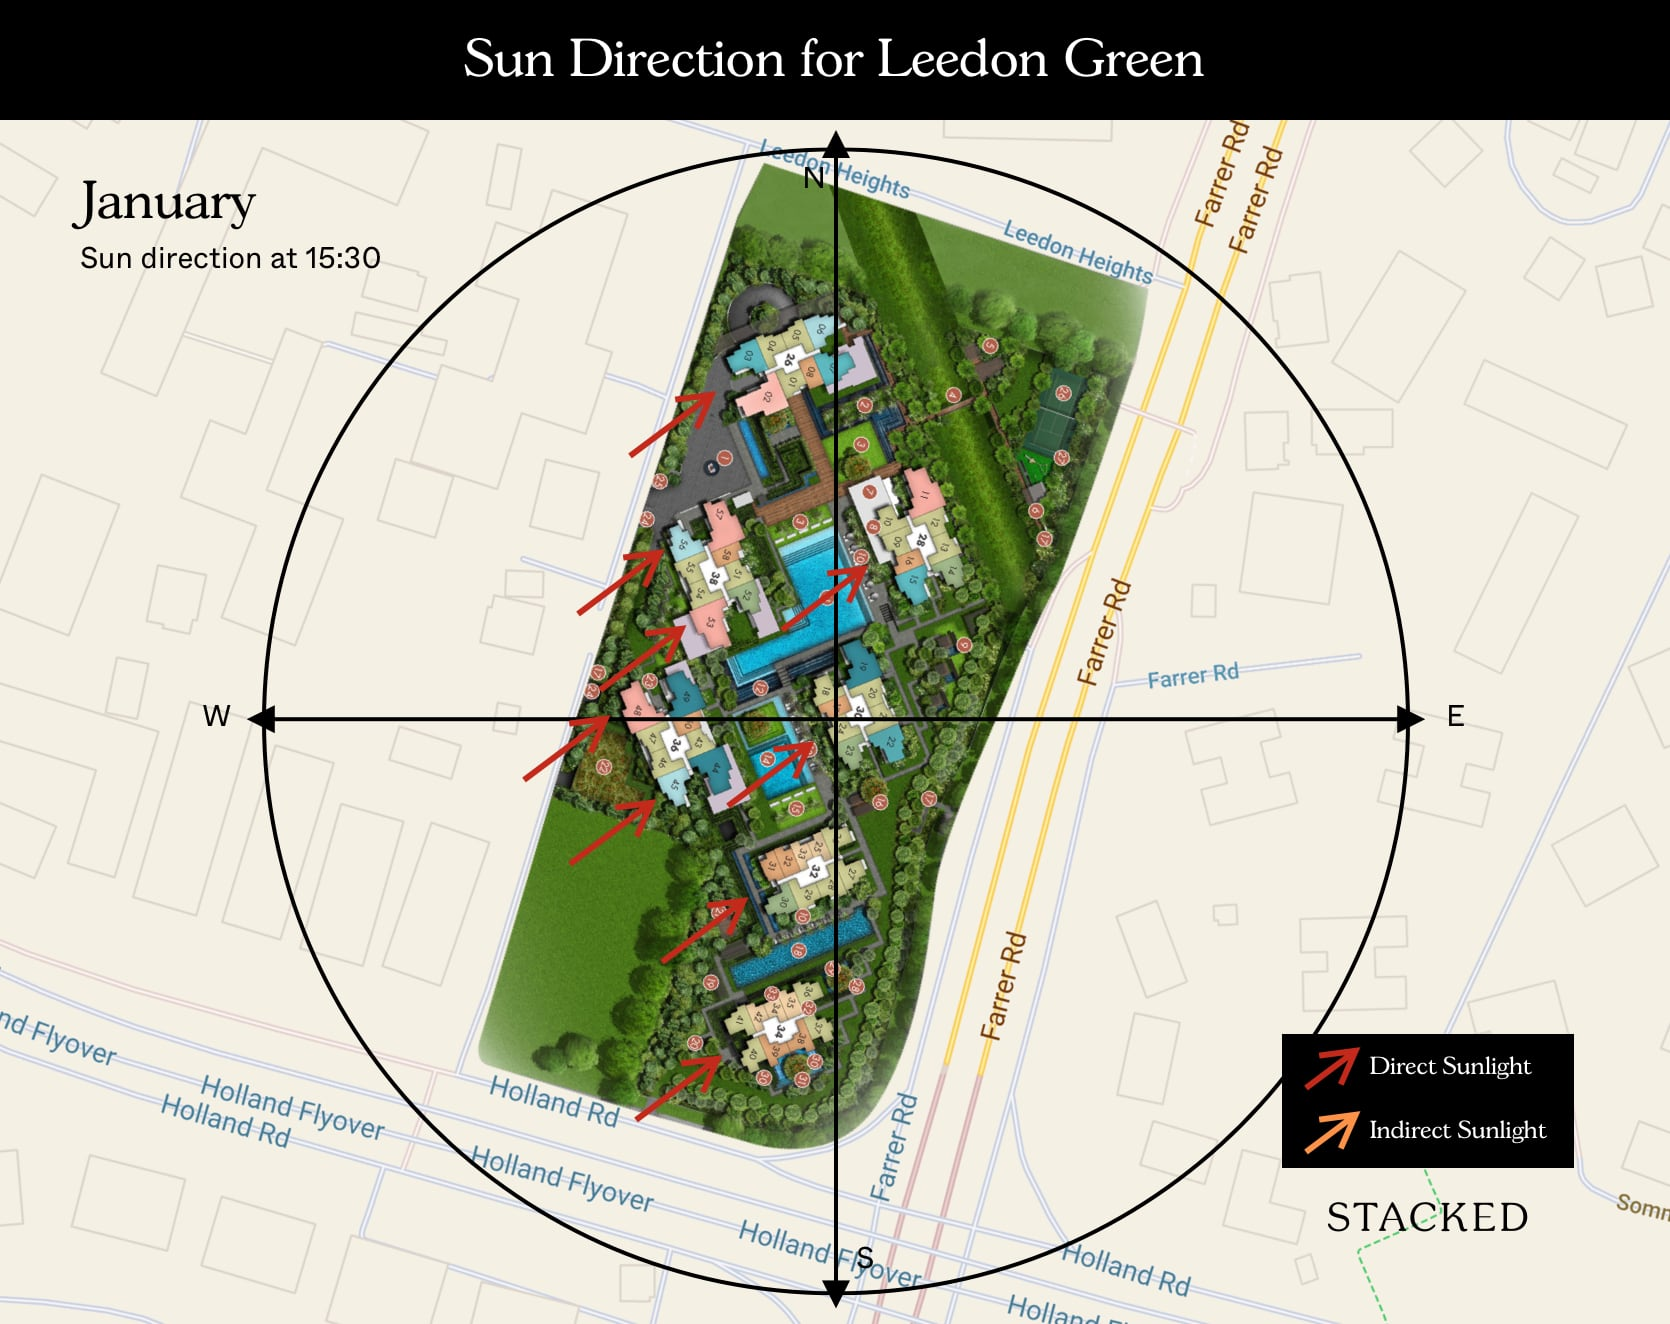 Leedon Green Sun Direction January